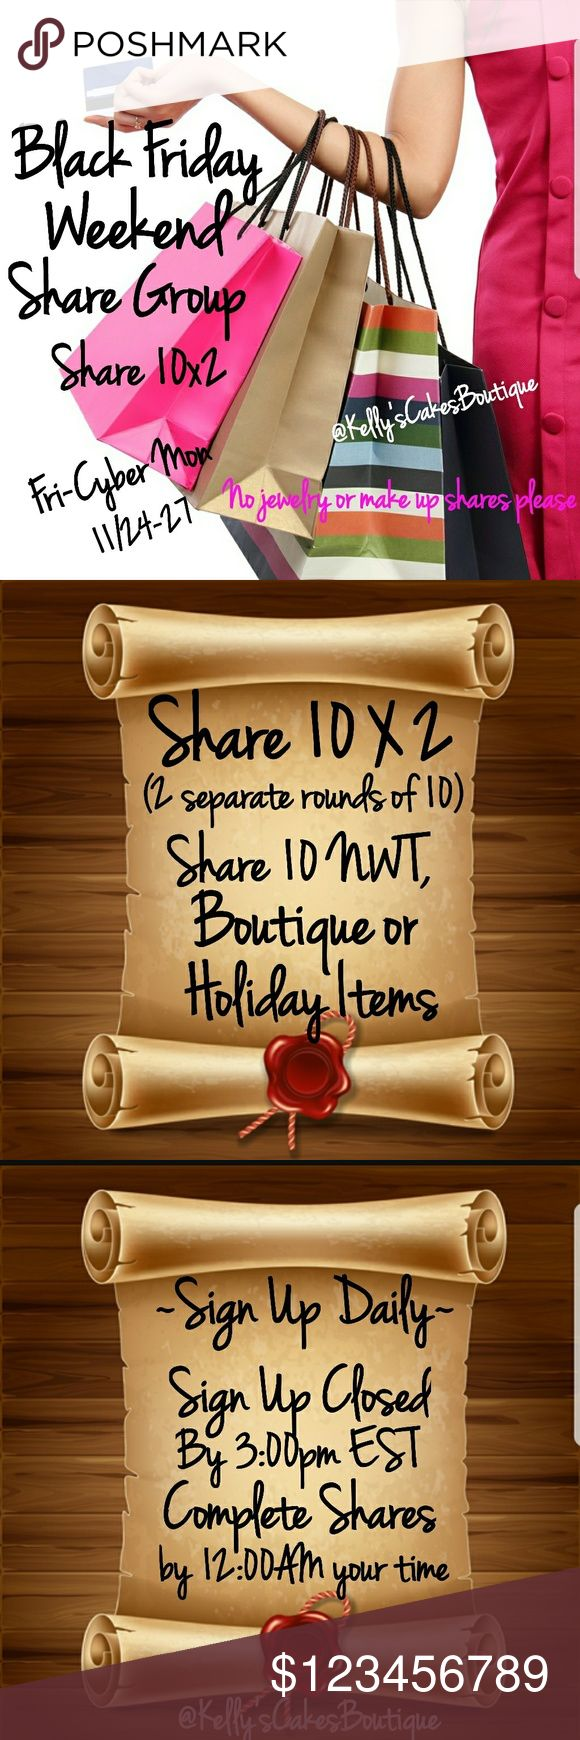 🛍🎁🎄NEW BLACK FRIDAY WEEKEND SHARE GROUP🎄🎁🛍 Interested in a NEW Weekend Share Group? Let's make the most of this weekend!! Let's make some SALES!!!  Share 10 X's 2. Group Starts Fri 11/24. Group Closes at 3:00pm EST. Complete shares by 12:00AM. Share Rd's #1 and Rd's #2 at least 1 hour apart.  Share NWT, Boutique or Holiday items(example ~Children's Holiday outfits, Festive Holiday Wear, etc)  No Jewelry or Make up shares please!! Share Clothing,  Accessories,  Shoes,  Purses/Bags. Must…